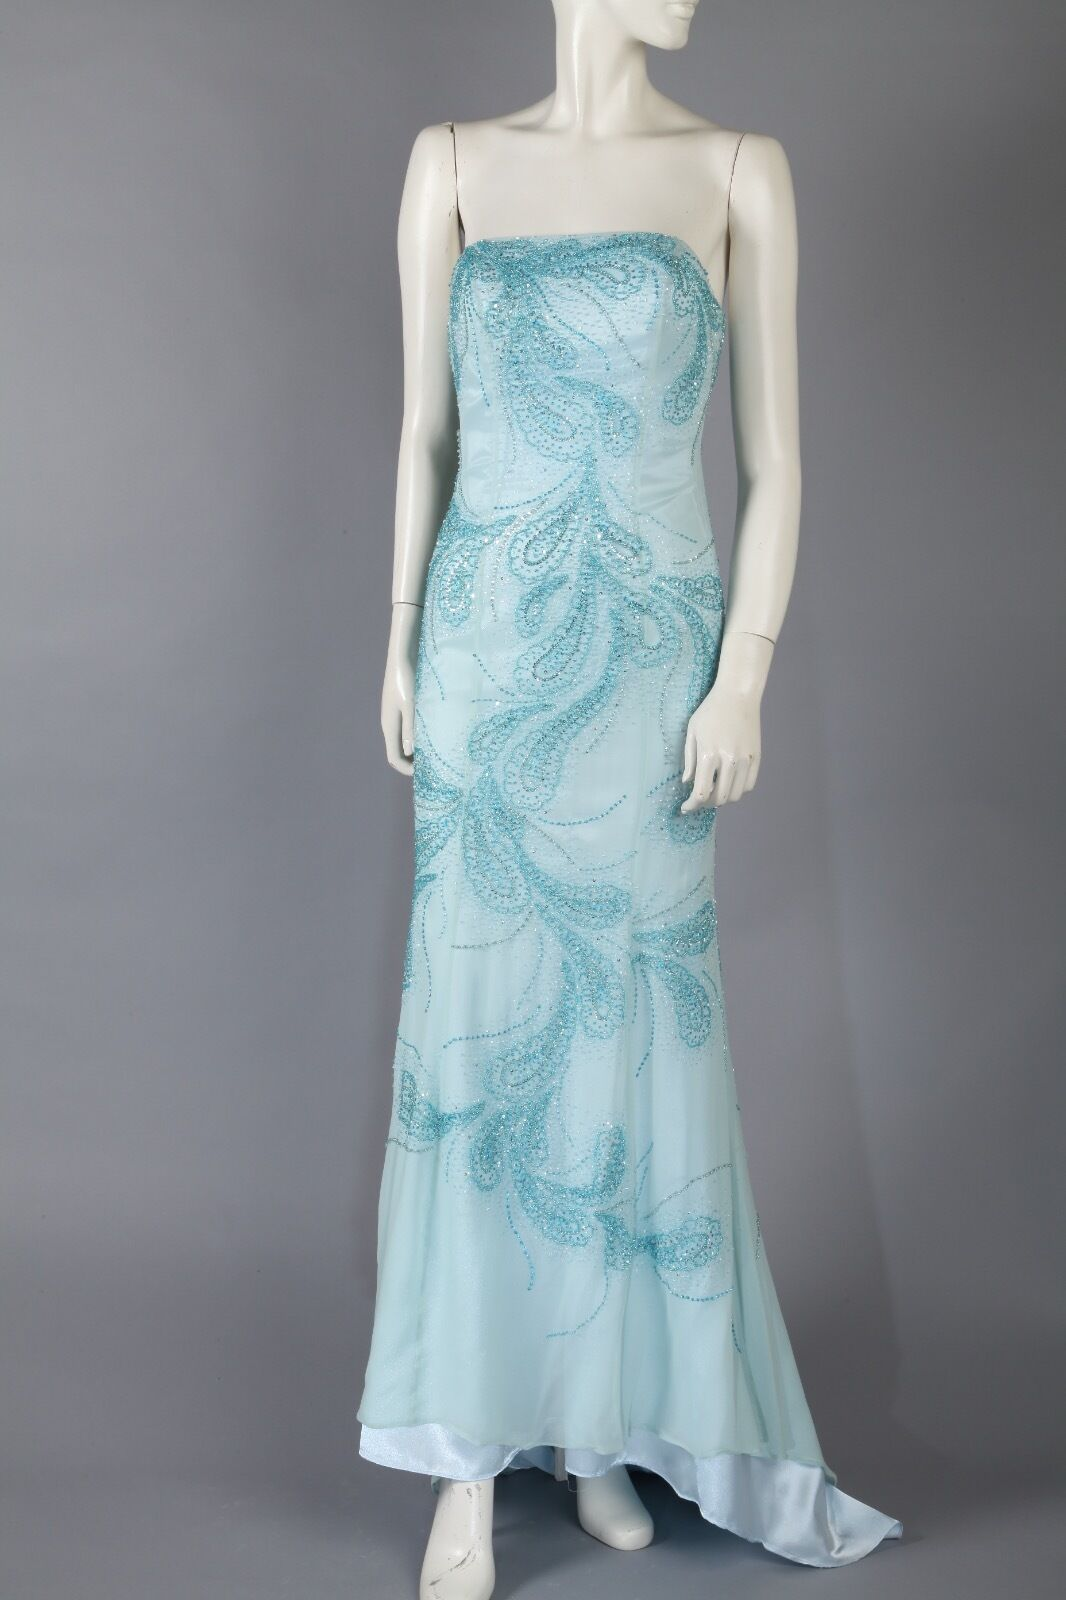 Vintage Sea bluee Prom Dress Strapless W Sequins